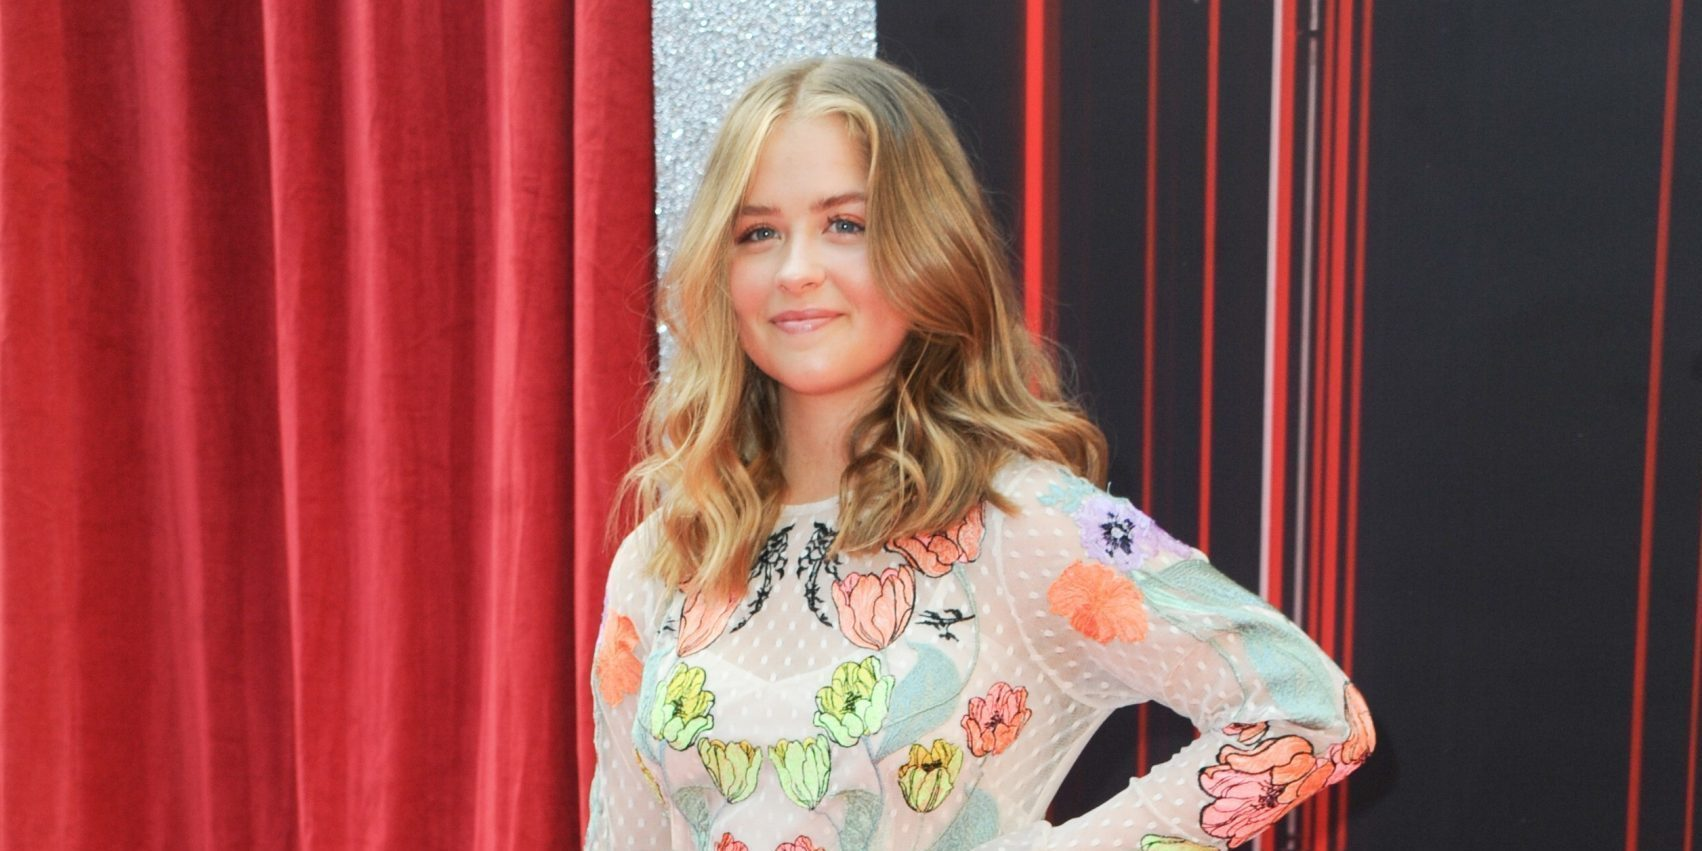 Emmerdale's Isobel Steele soaks up the sun with cute pups in adorable pic